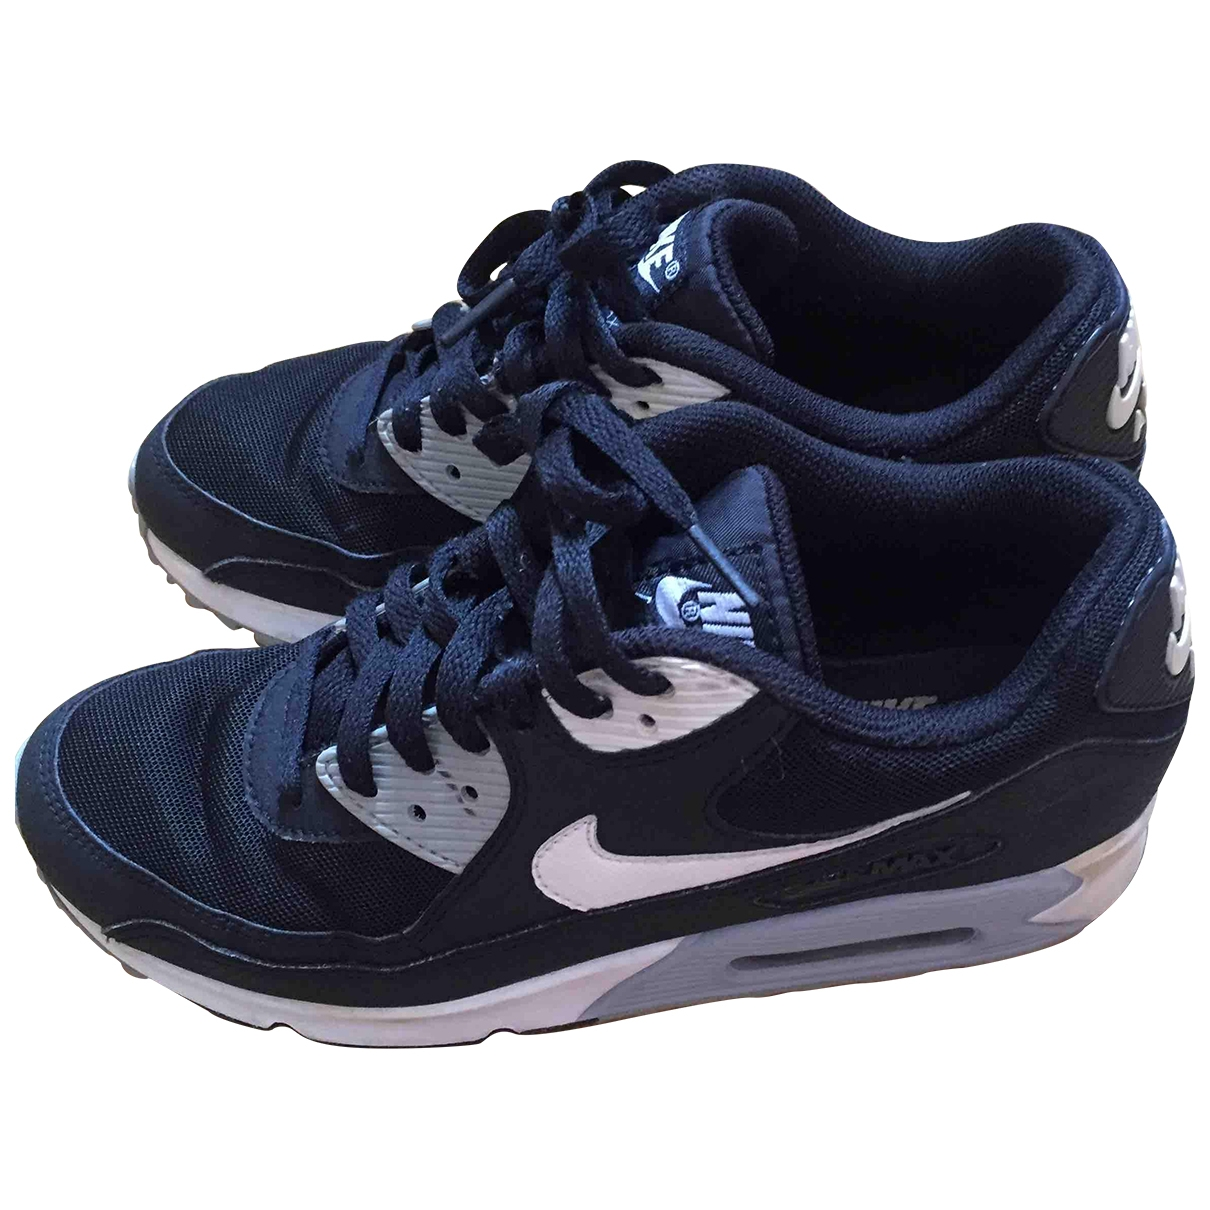 Nike Air Max 90 Black Leather Trainers for Women 39 EU